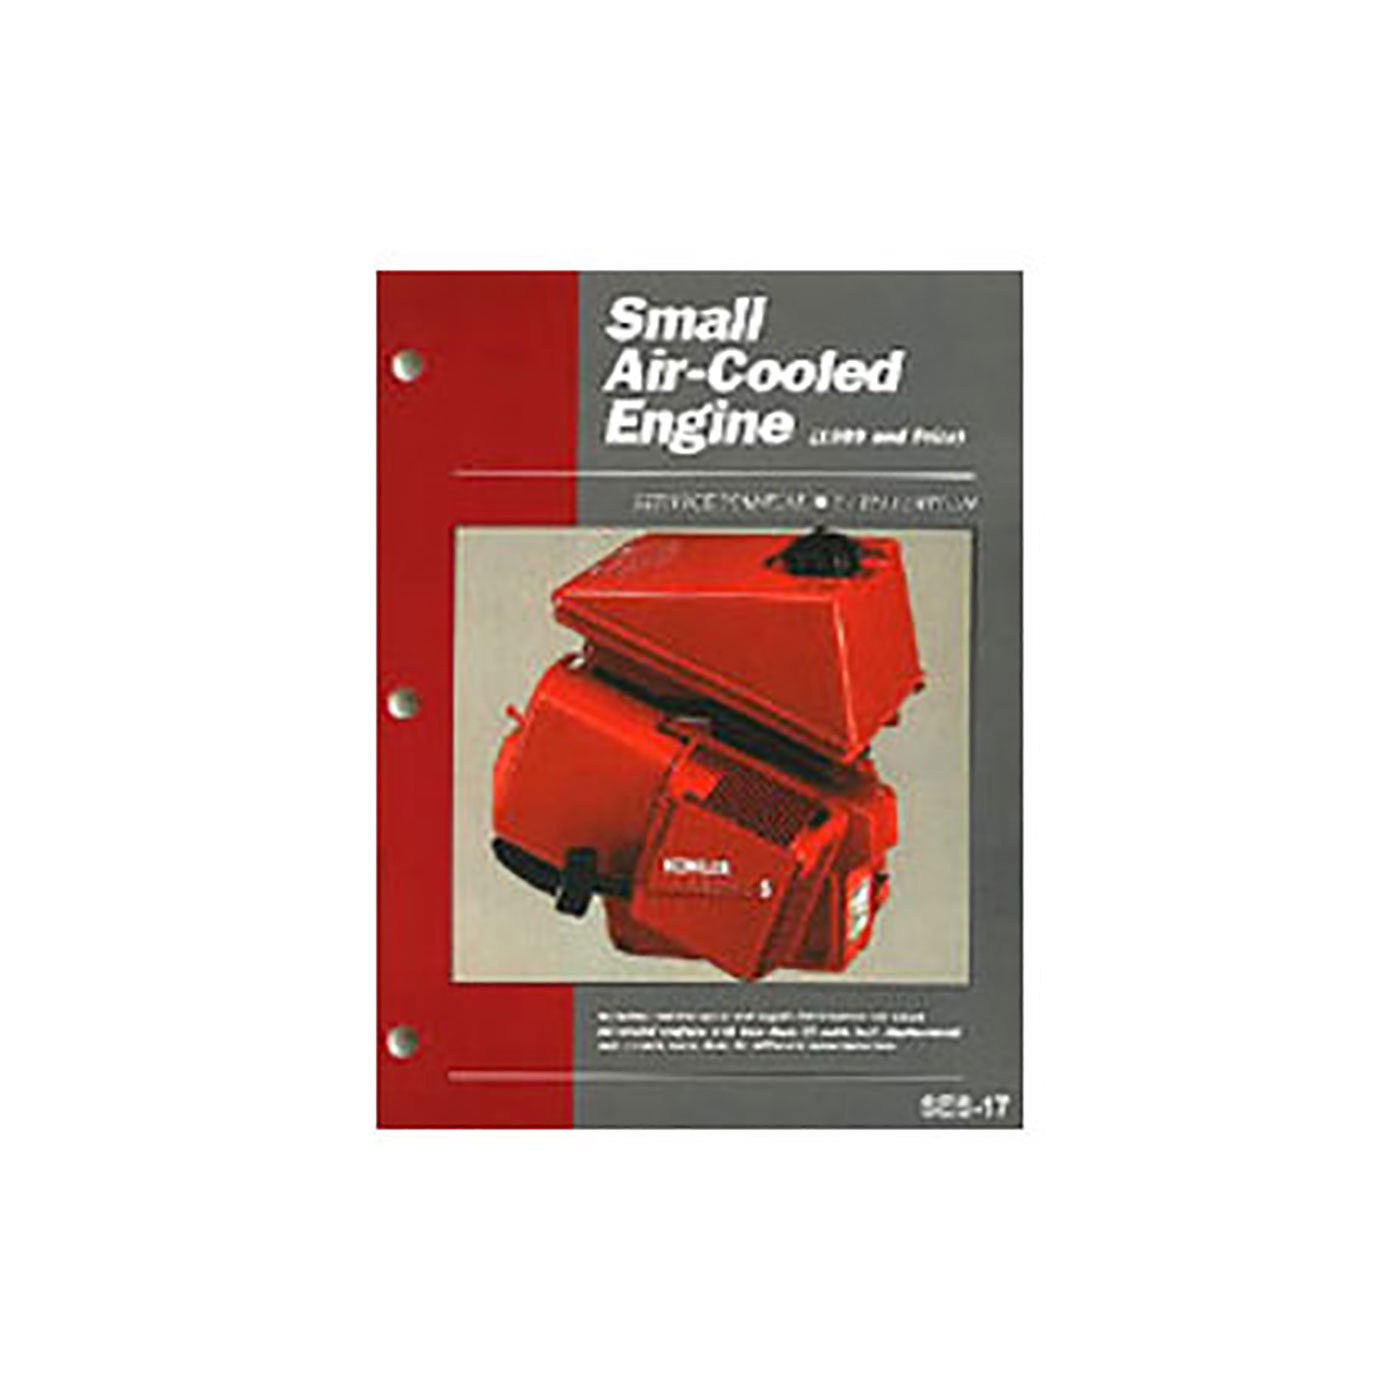 Small Air-Cooled Engine (1989 and prior)